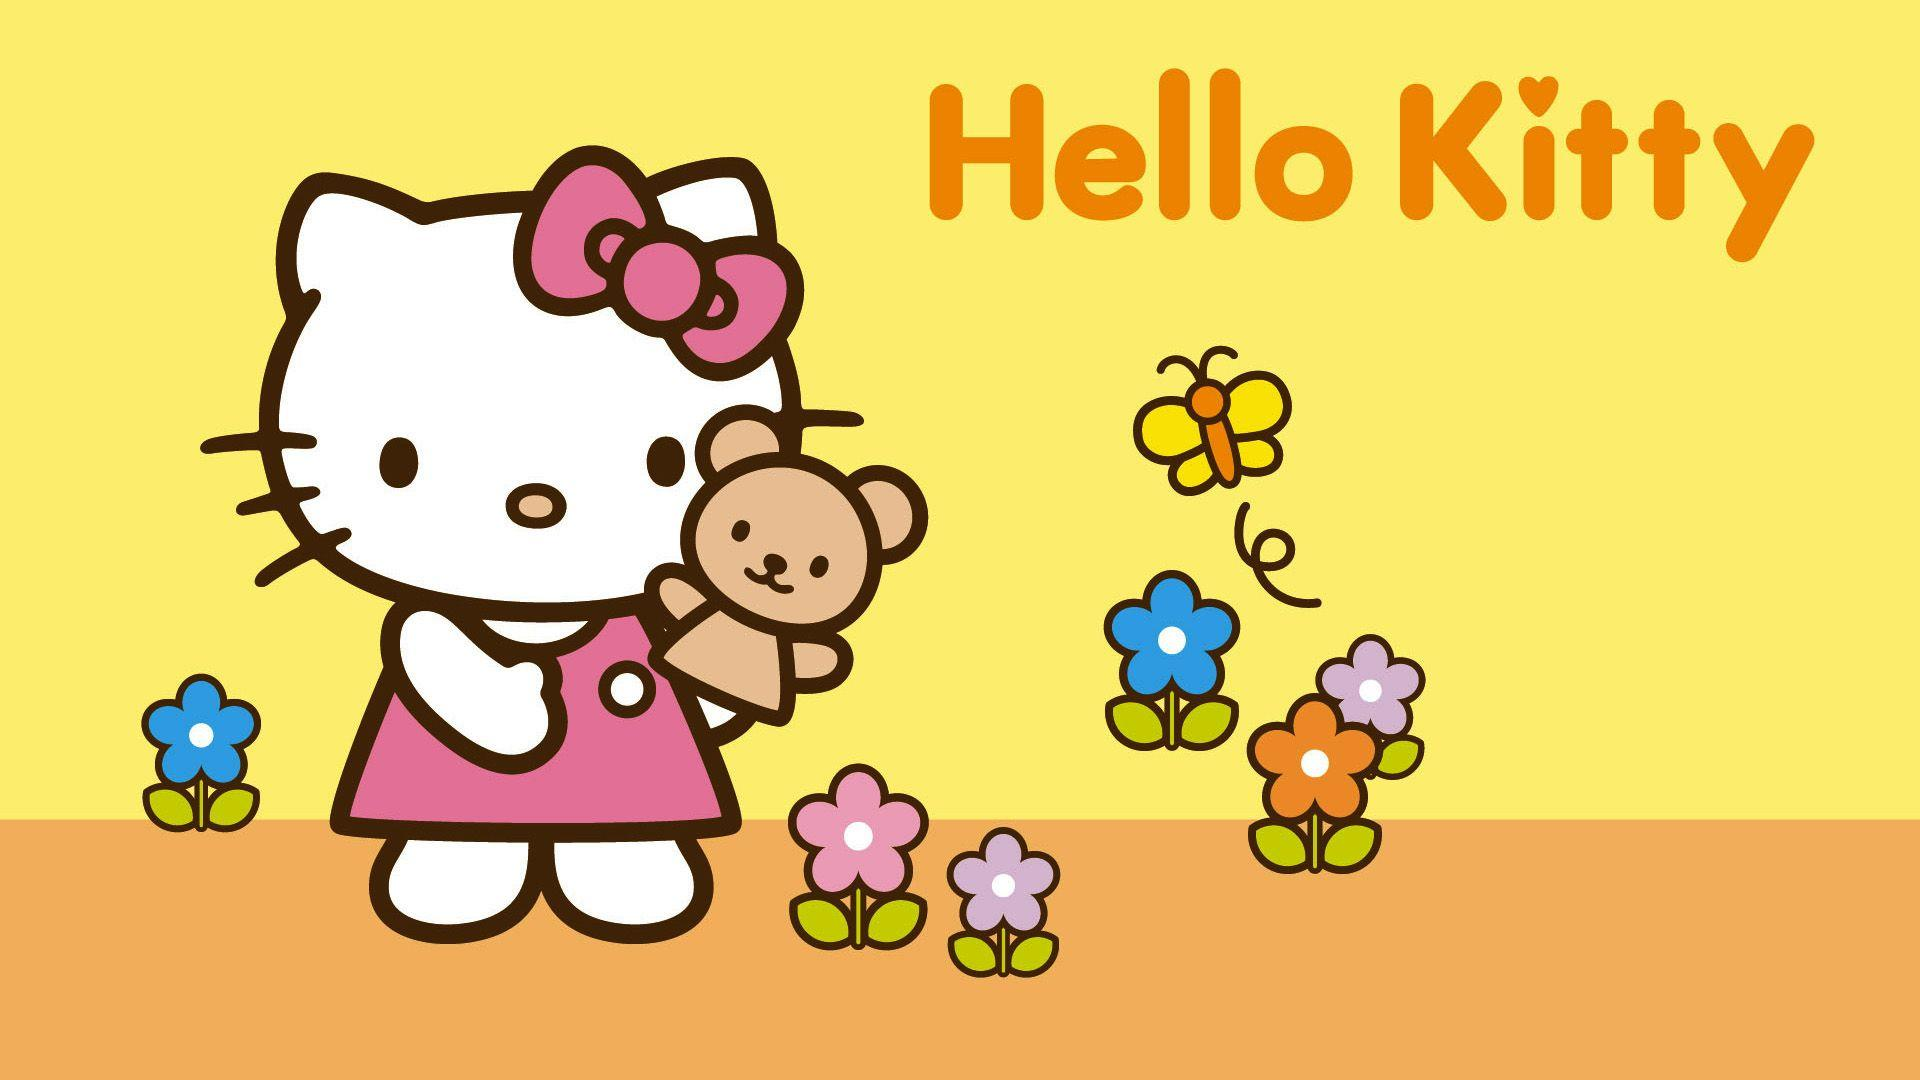 Hello Kitty With Bunny Wallpaper HD #5896 Wallpaper | Wallpaper ...